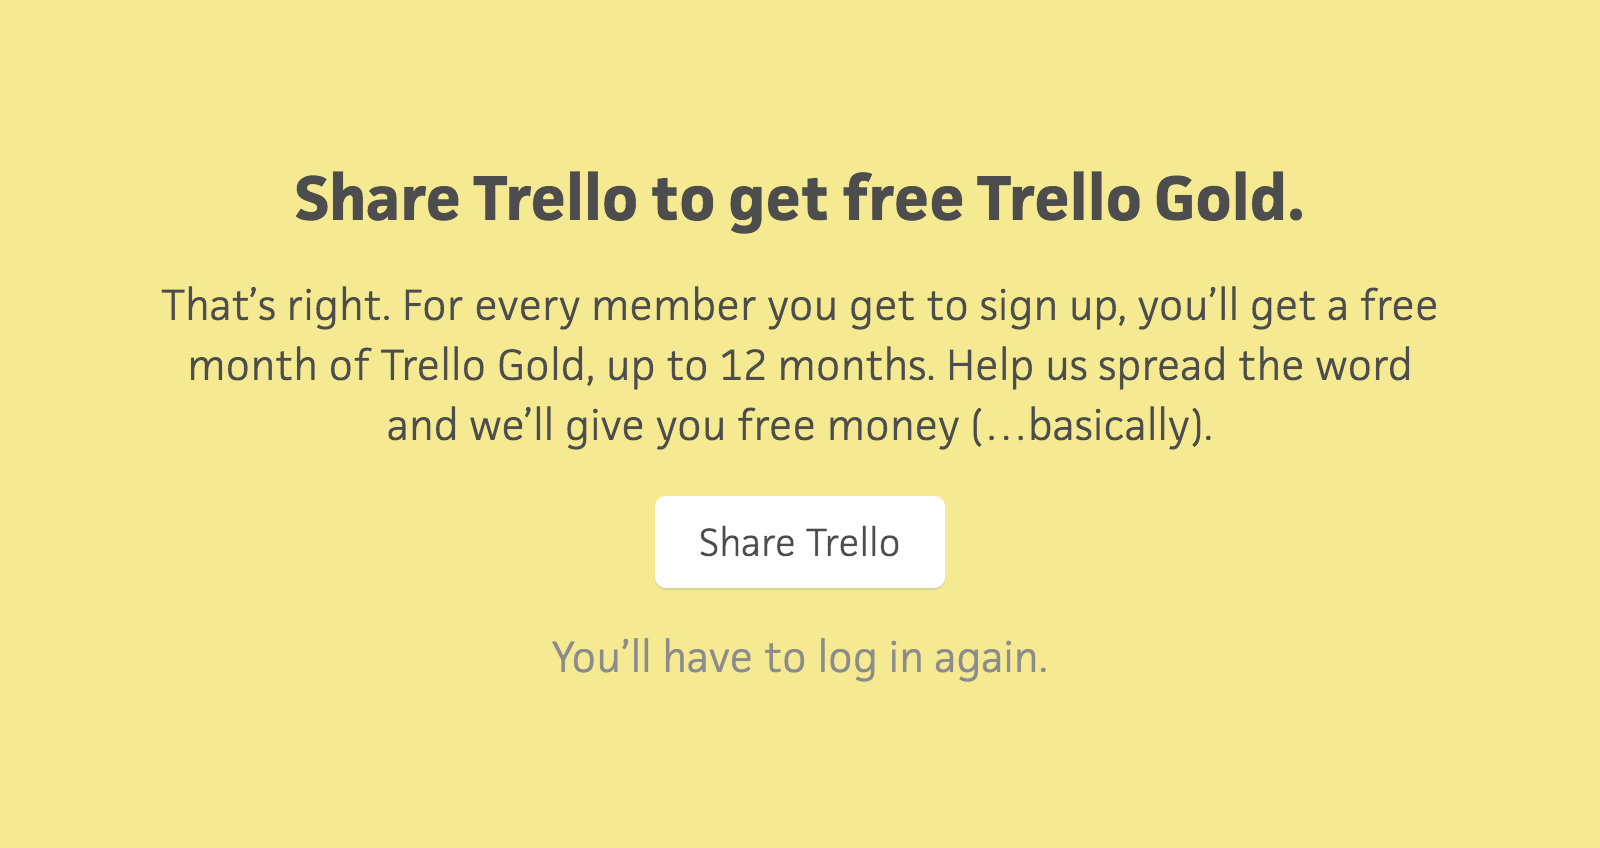 Share Trello to get free Trello Gold